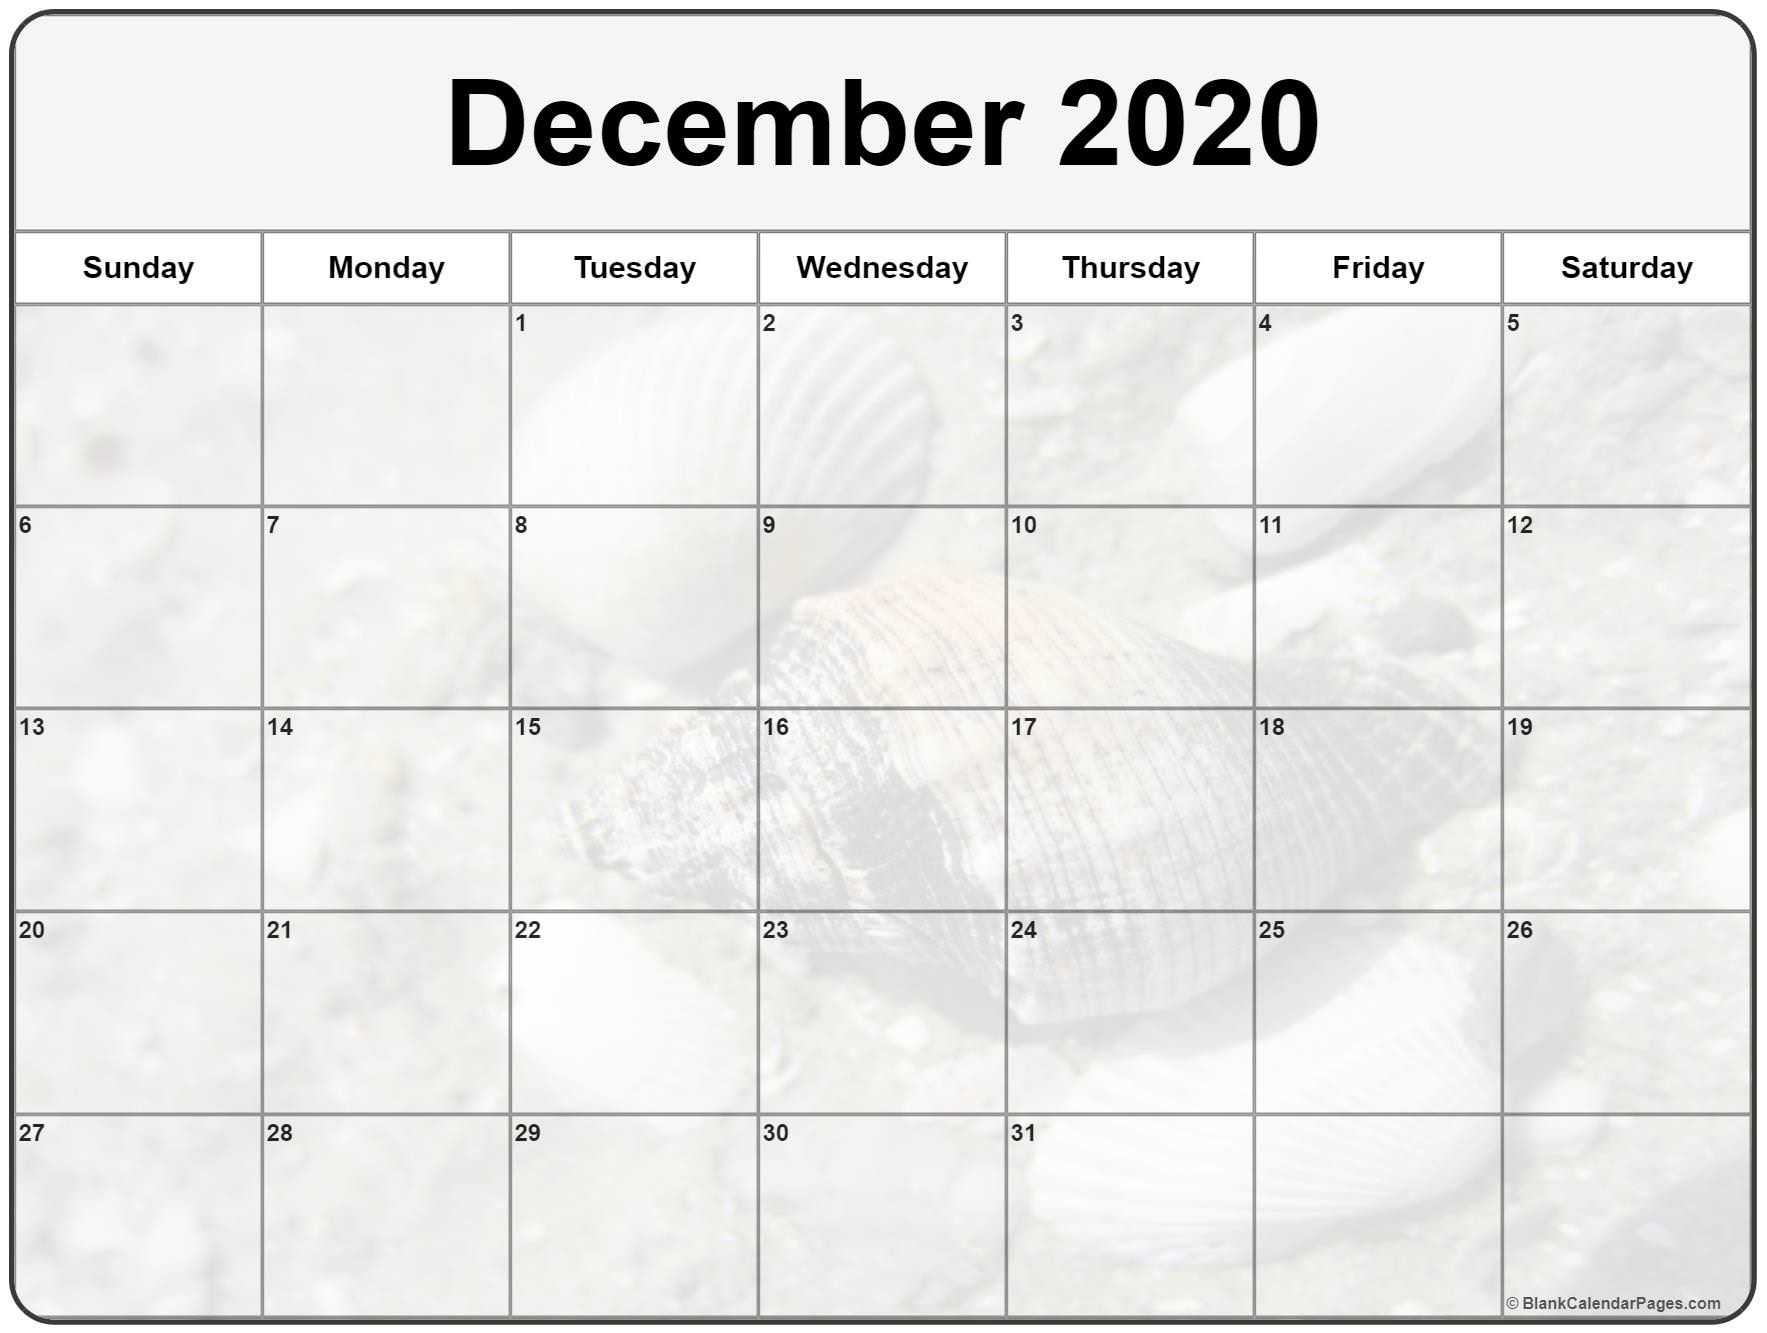 Collection of December 2020 photo calendars with image